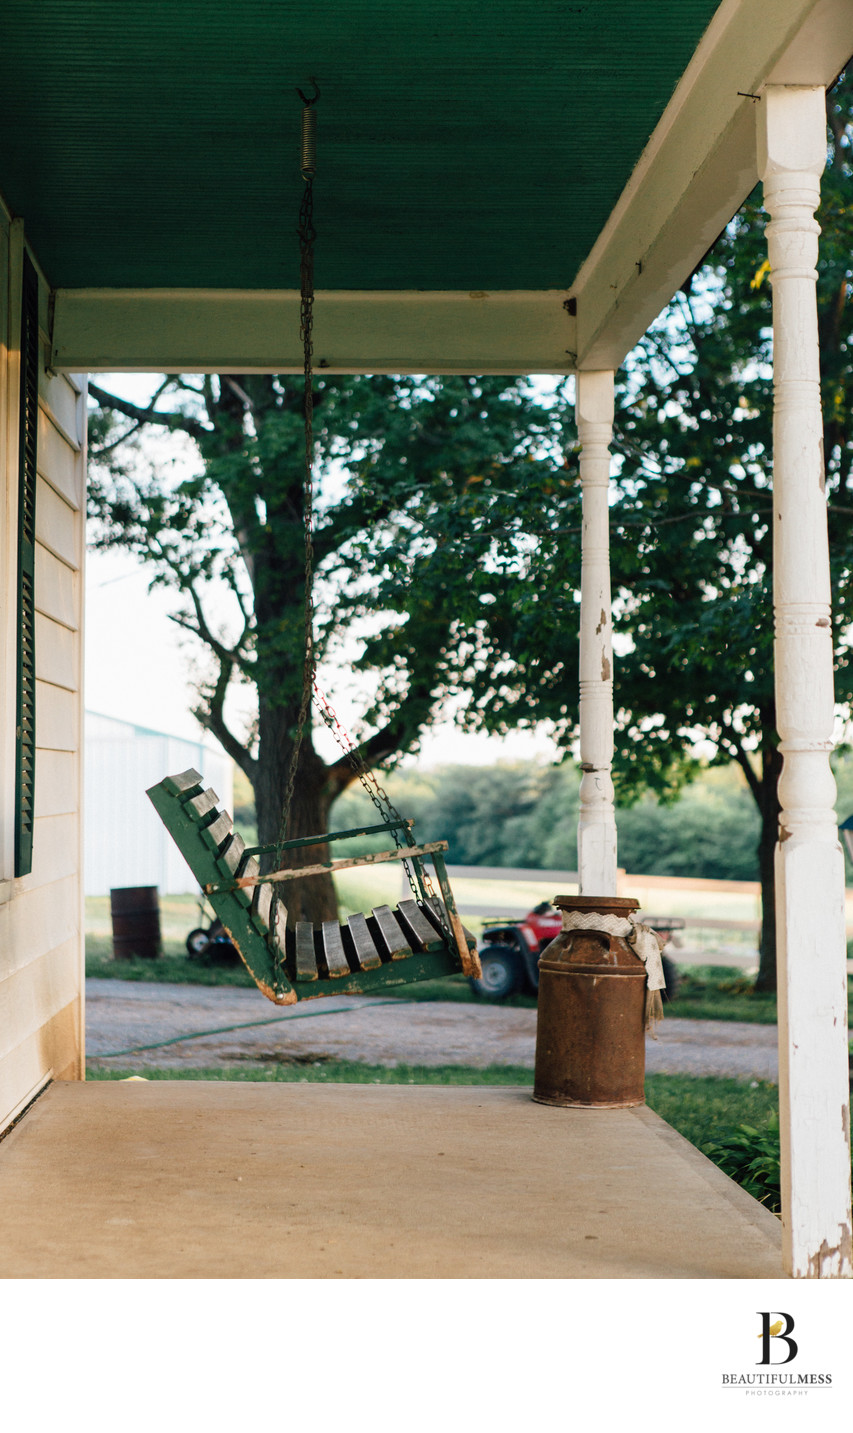 Porch swing on a summer evening